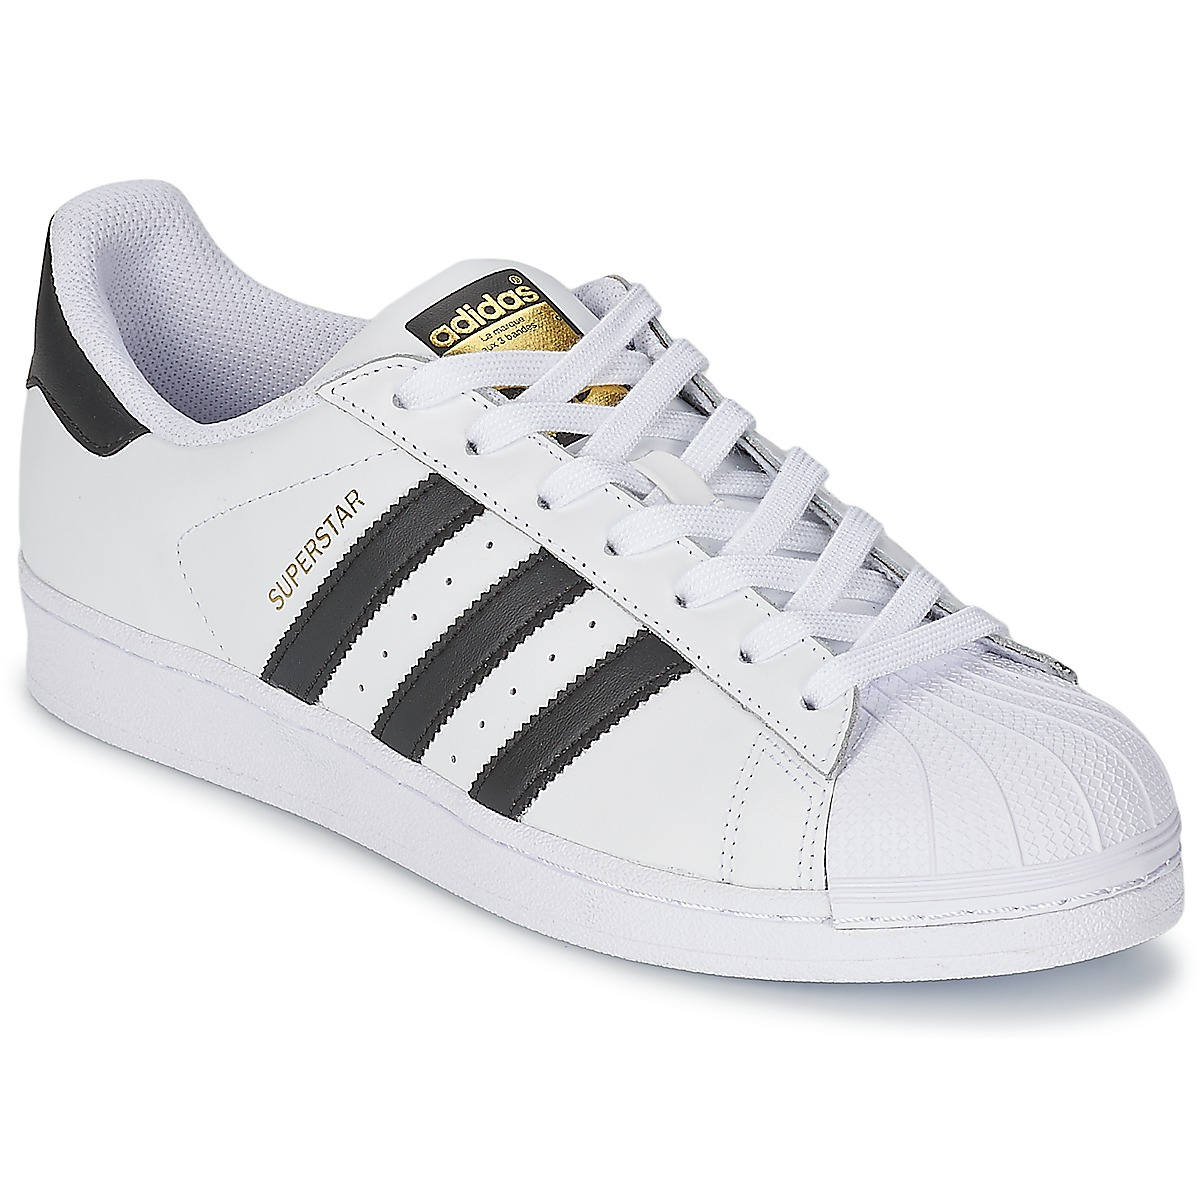 baskets basses adidas originals superstar blanc noir baskets femme spartoo ventes pas. Black Bedroom Furniture Sets. Home Design Ideas